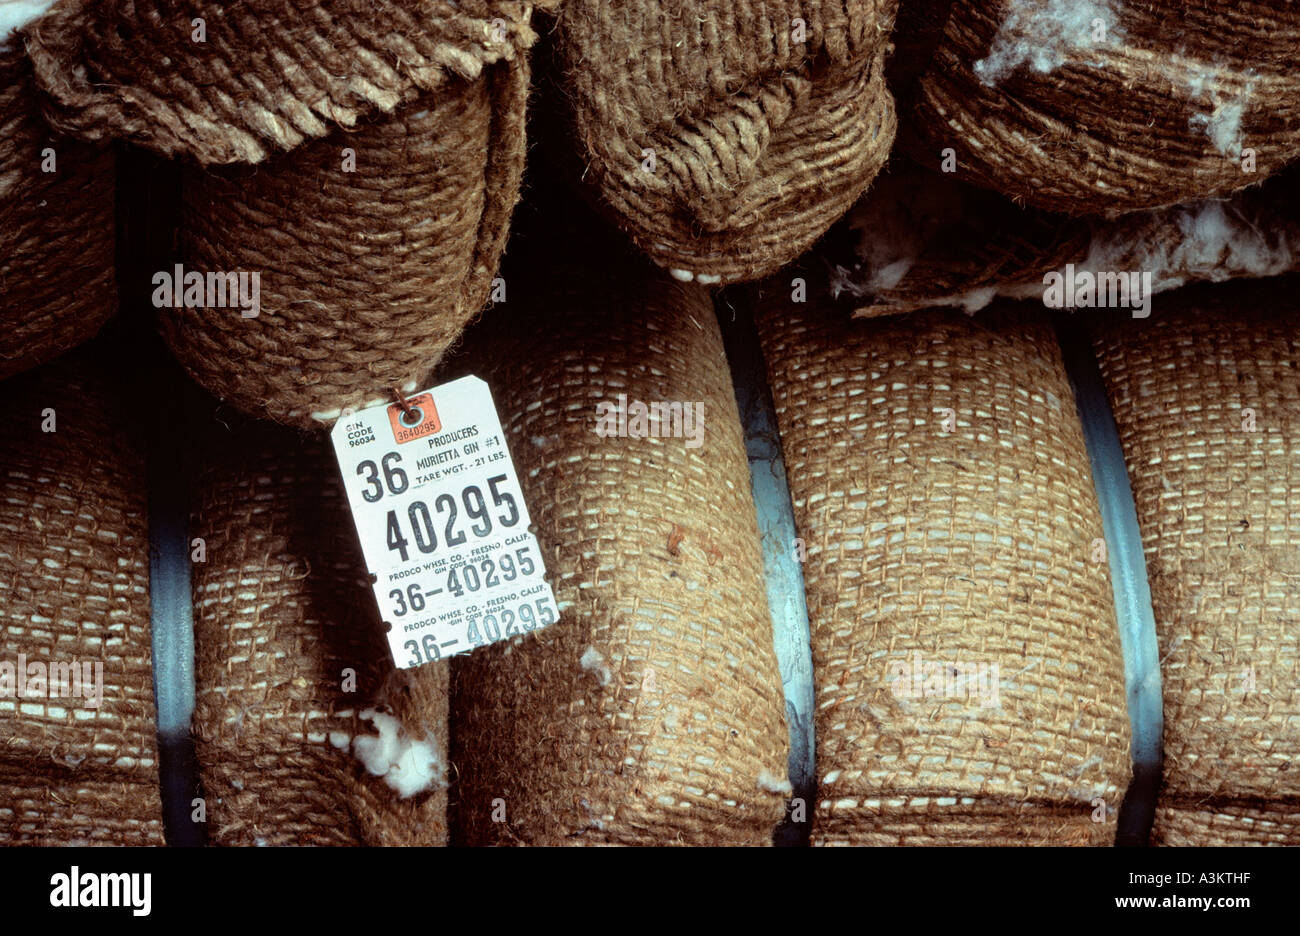 Bale of cotton in warehouse - Stock Image